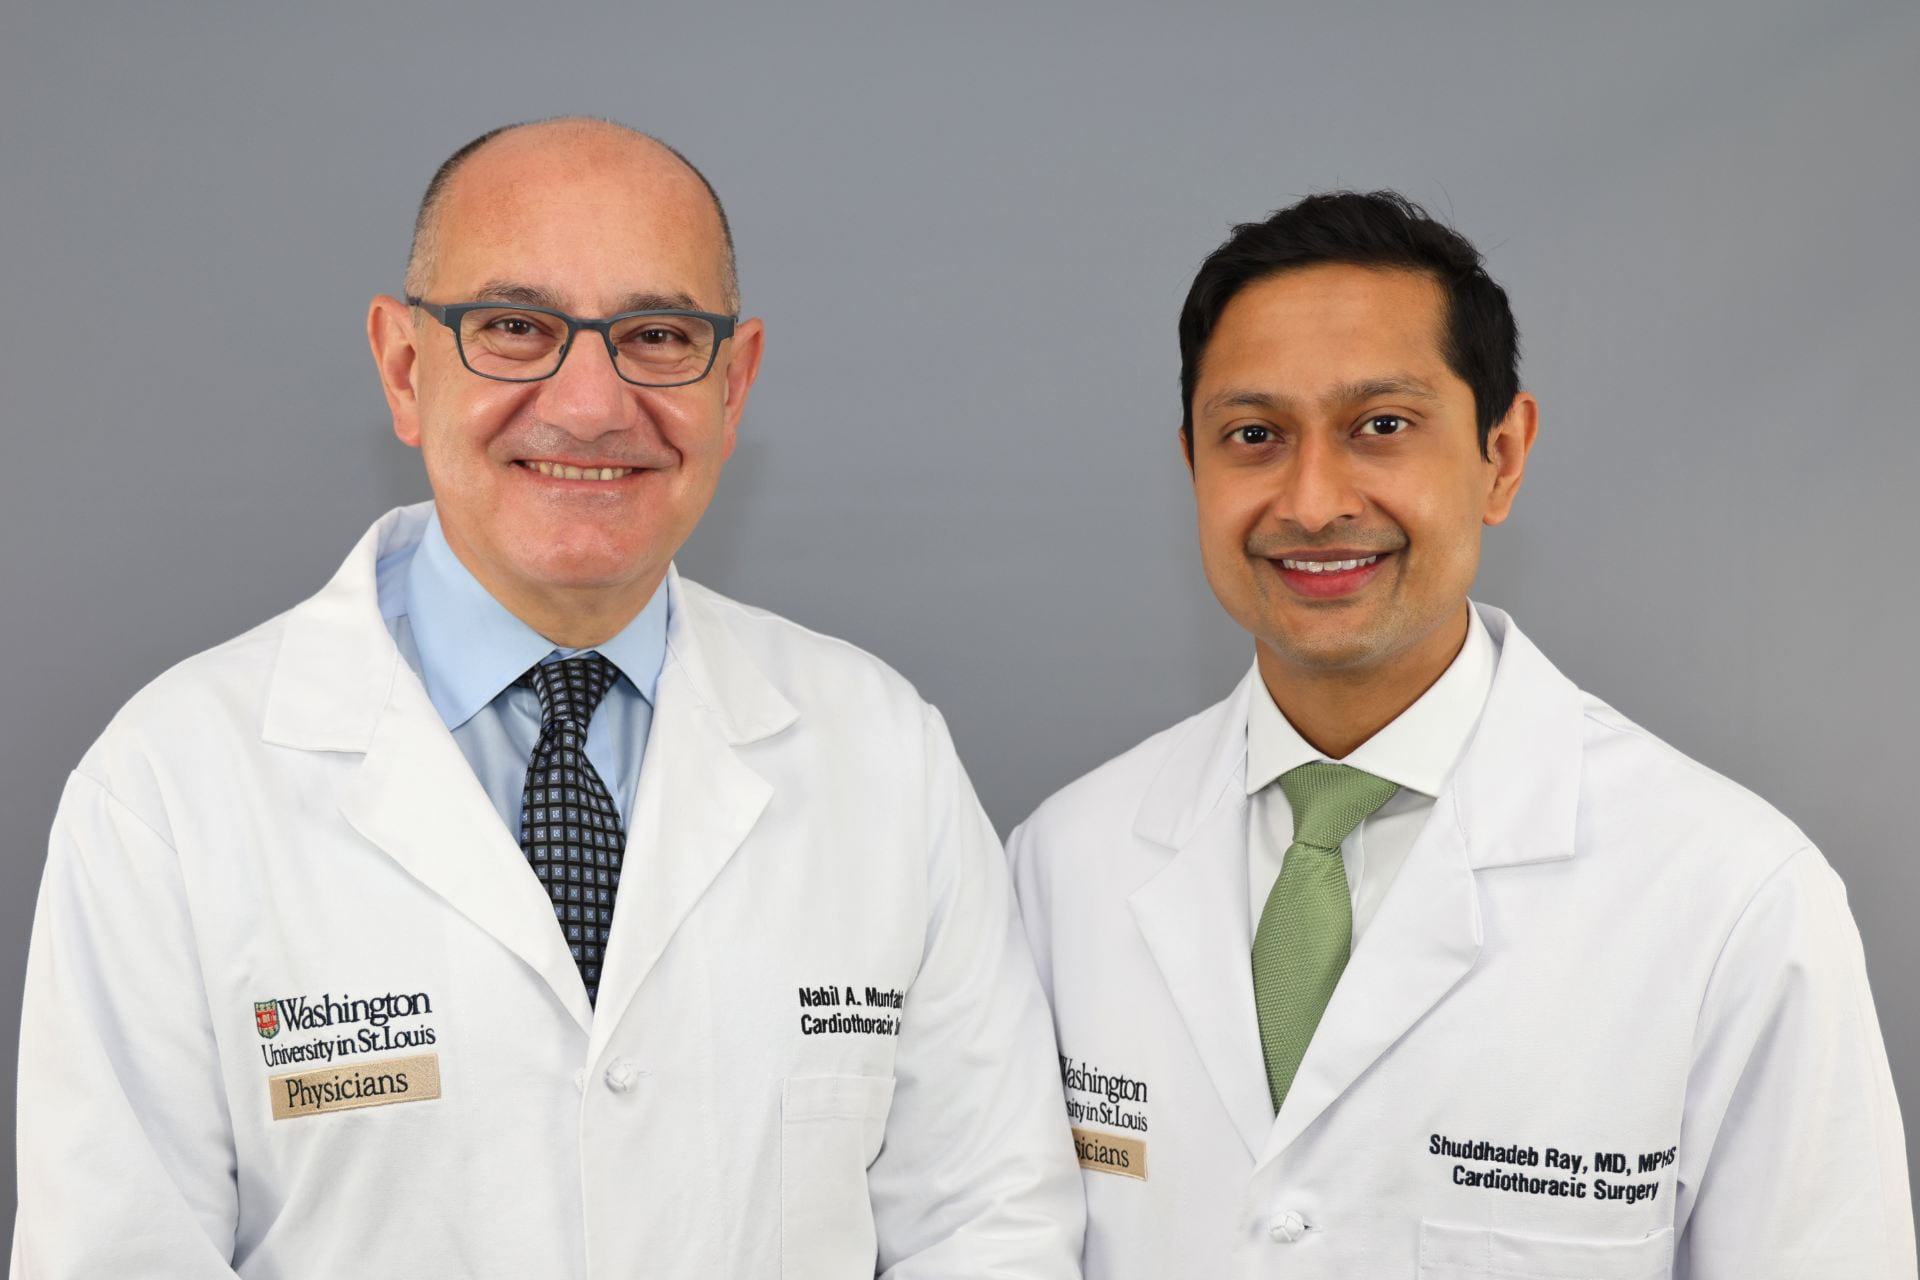 Drs. Munfakh and Ray treat a variety of CT conditions at Christian Northeast Hospital.